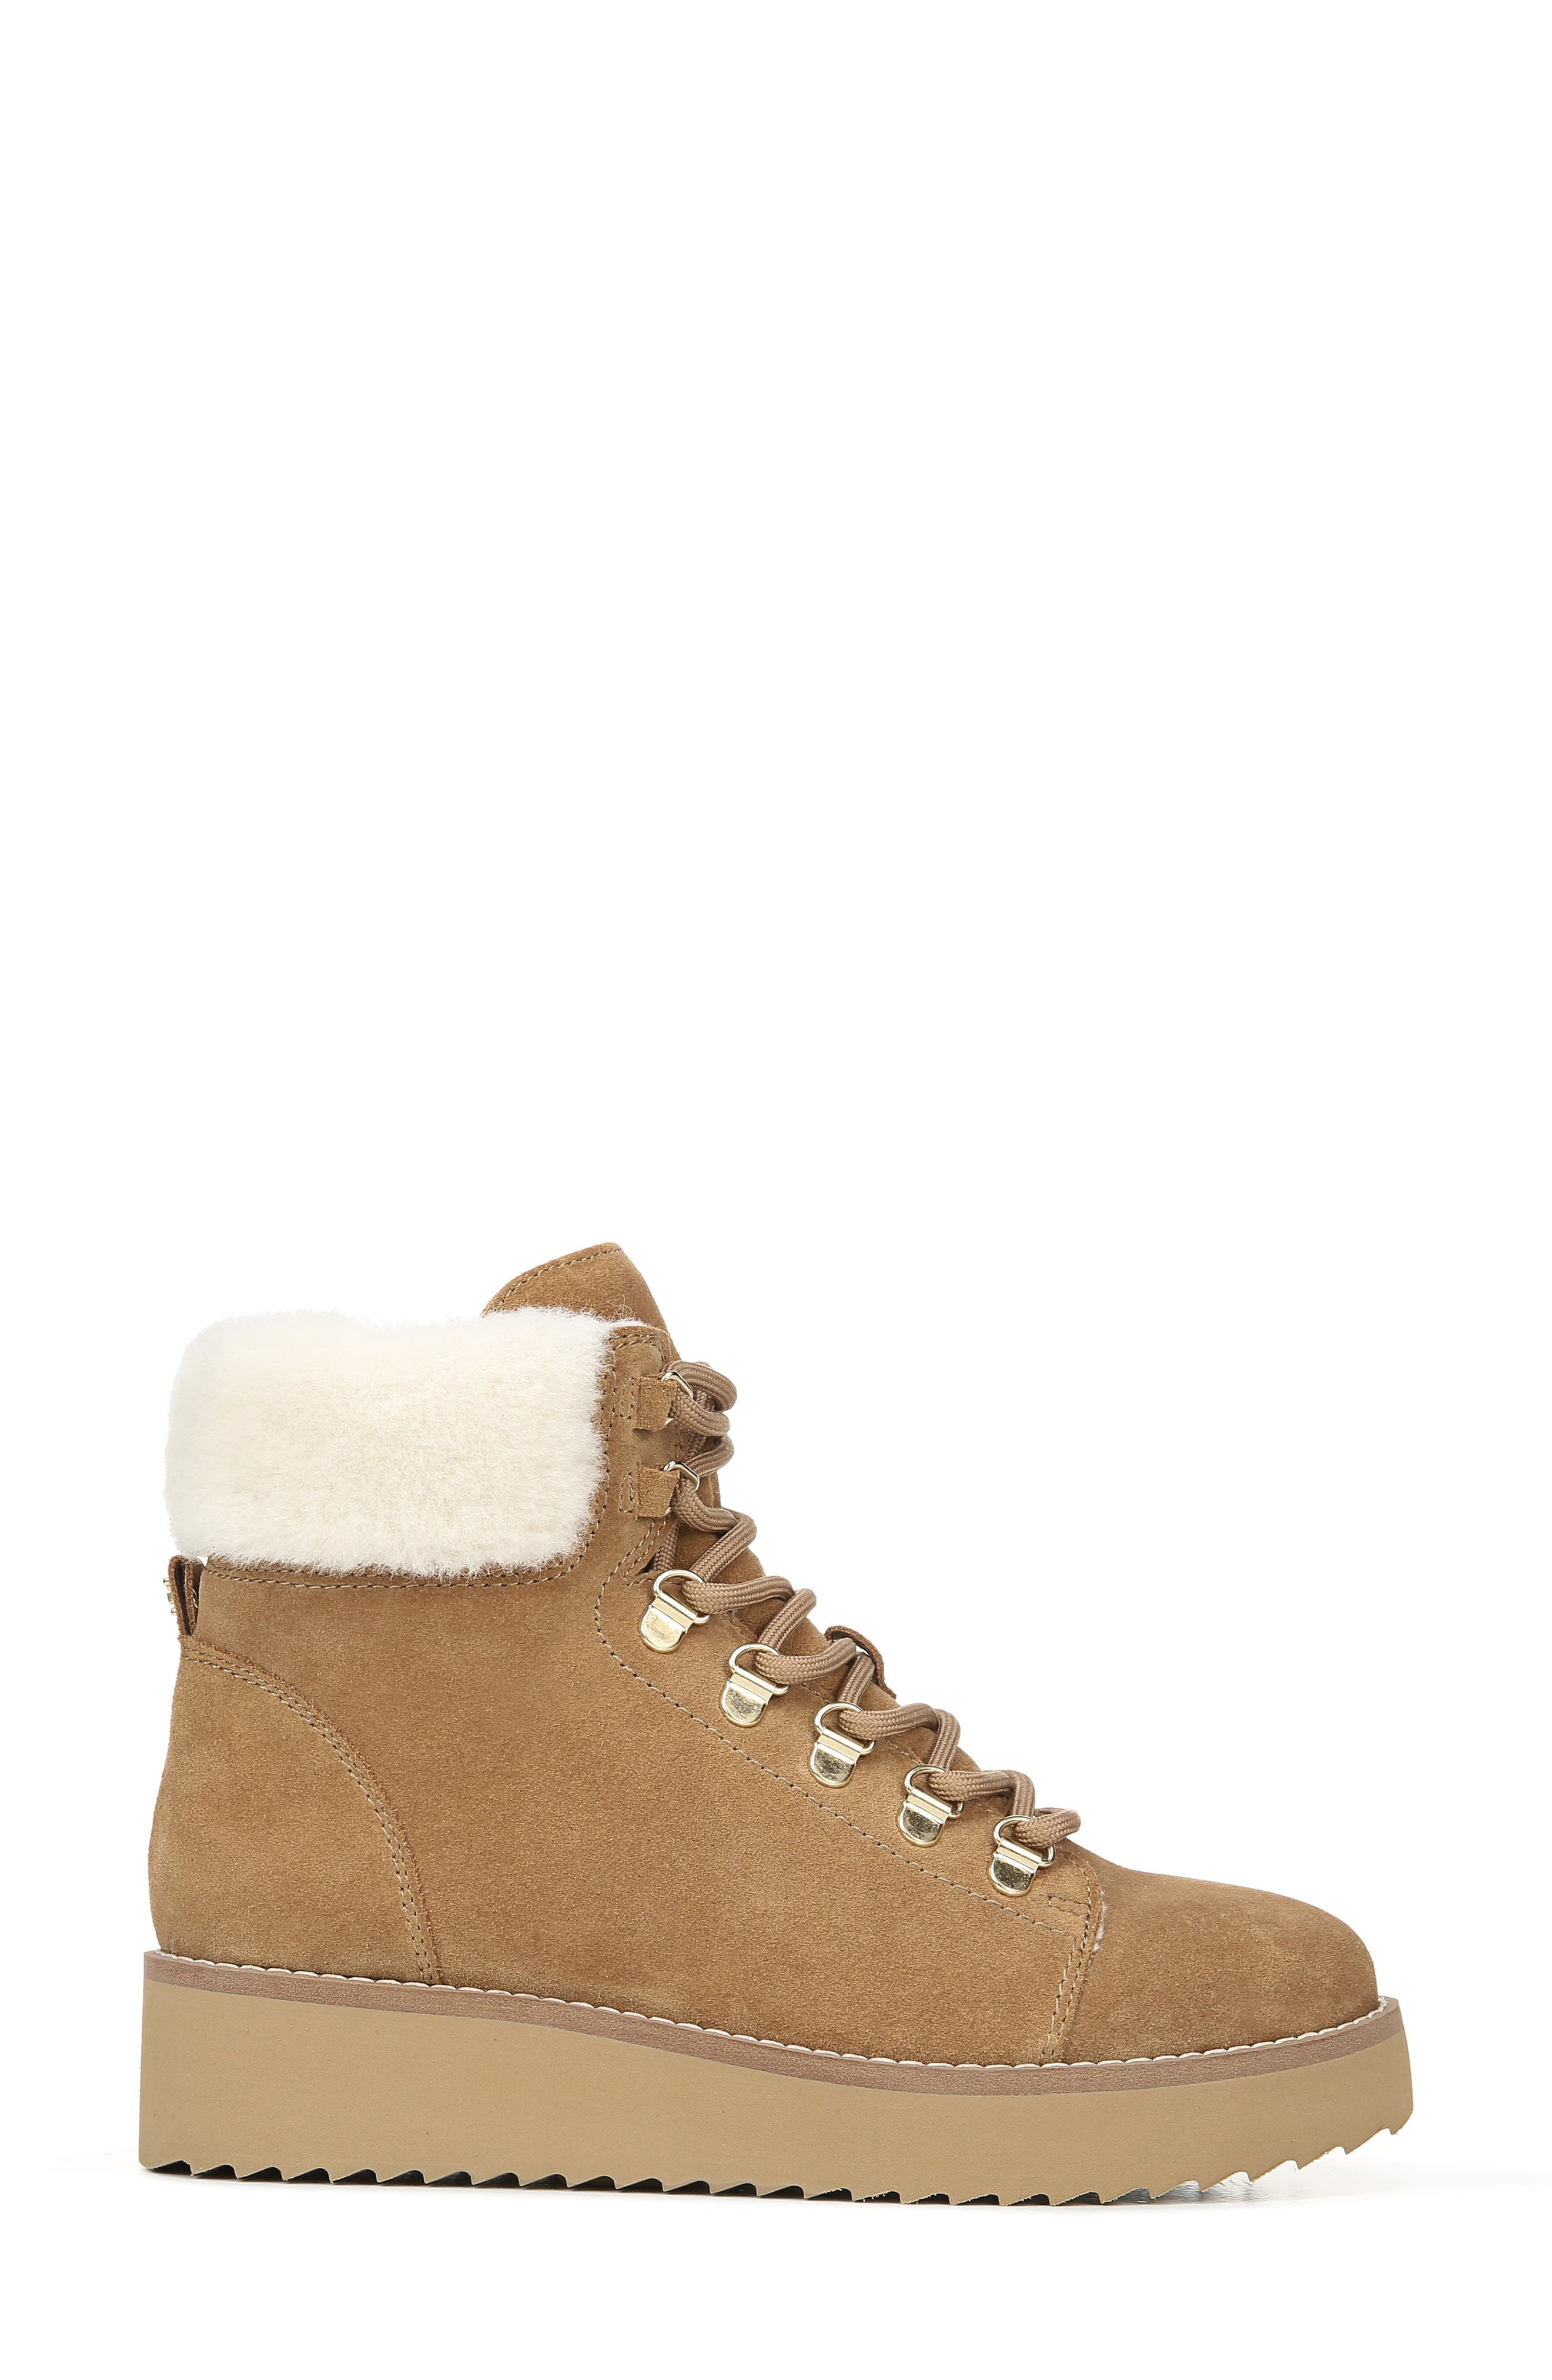 Sam Edelman Boots Franc Hiking Boot with Faux Shearling Trim